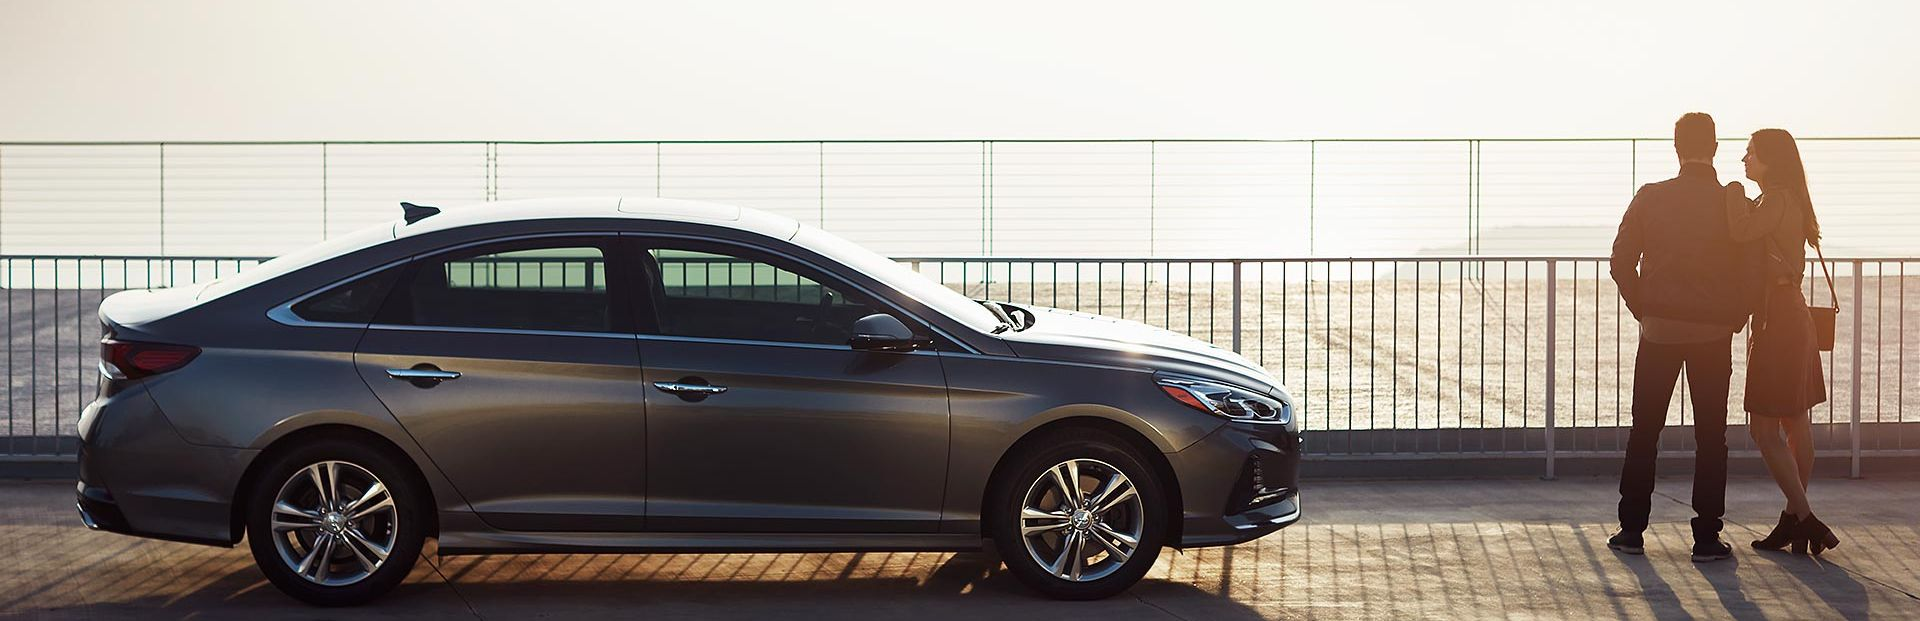 2019 Hyundai Sonata for Lease near College Park, MD